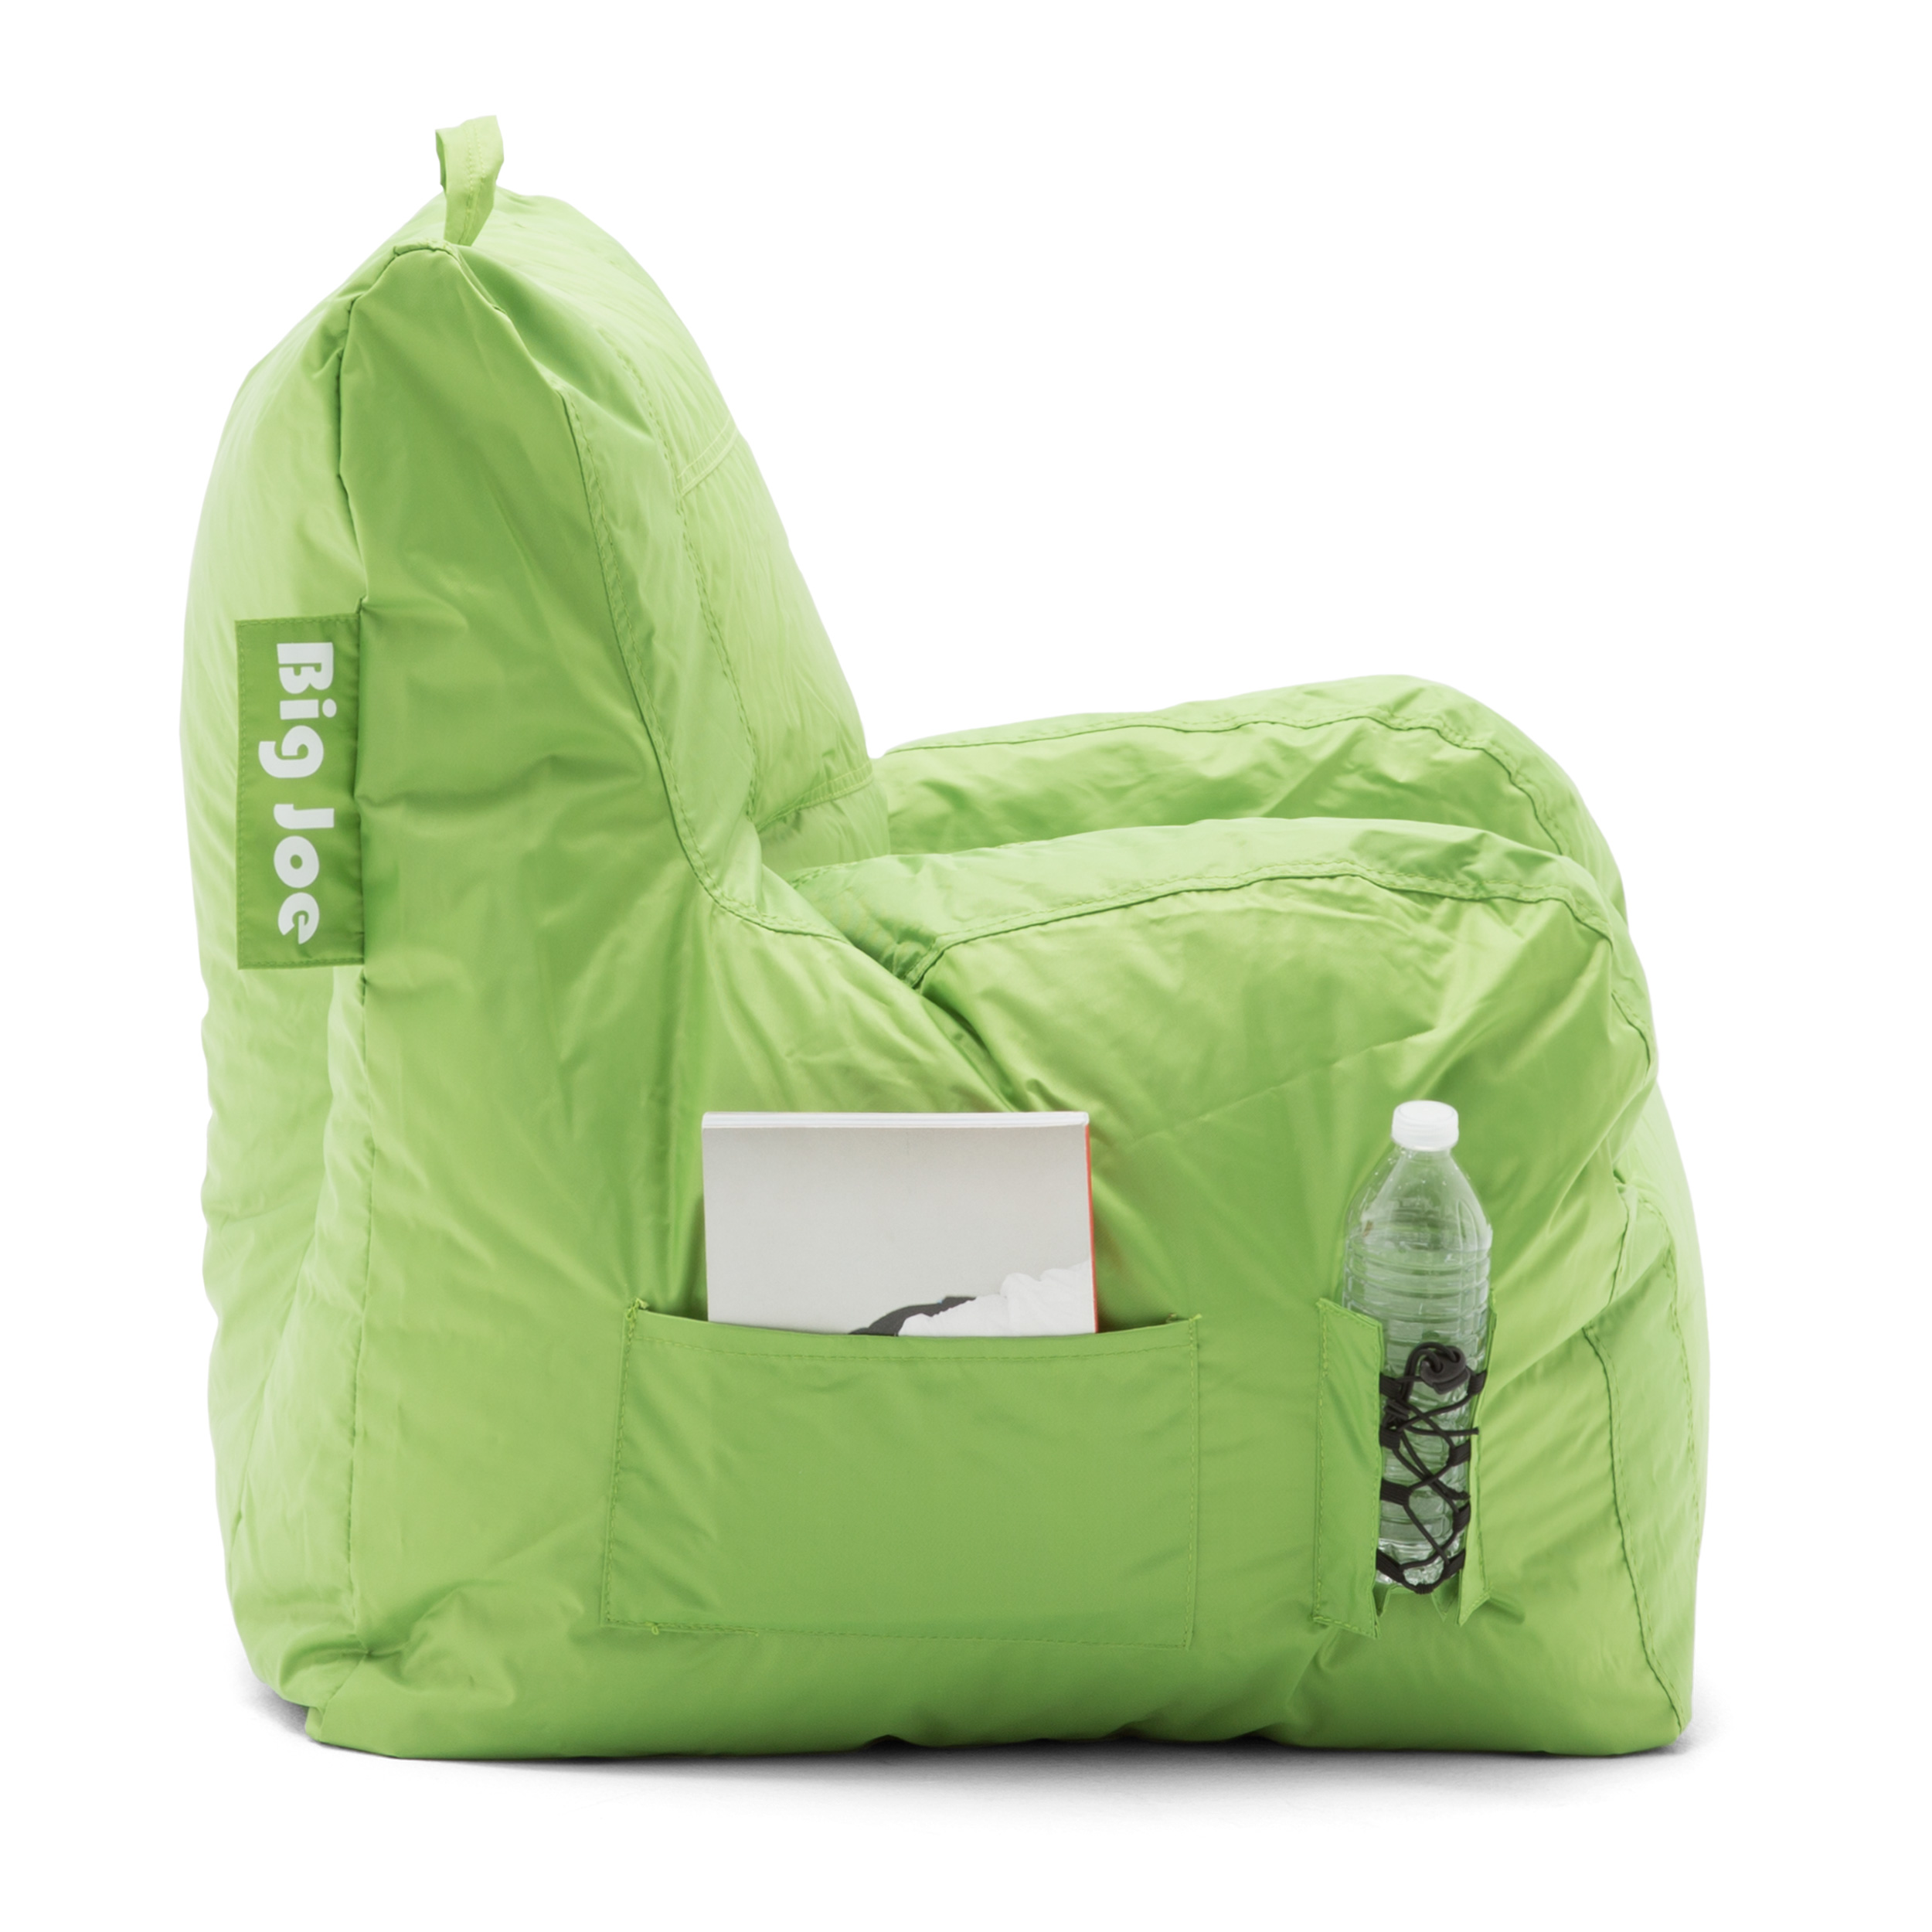 Bean Bag Chair Big Joe Lime Cozy Waterproof Seat Dorm